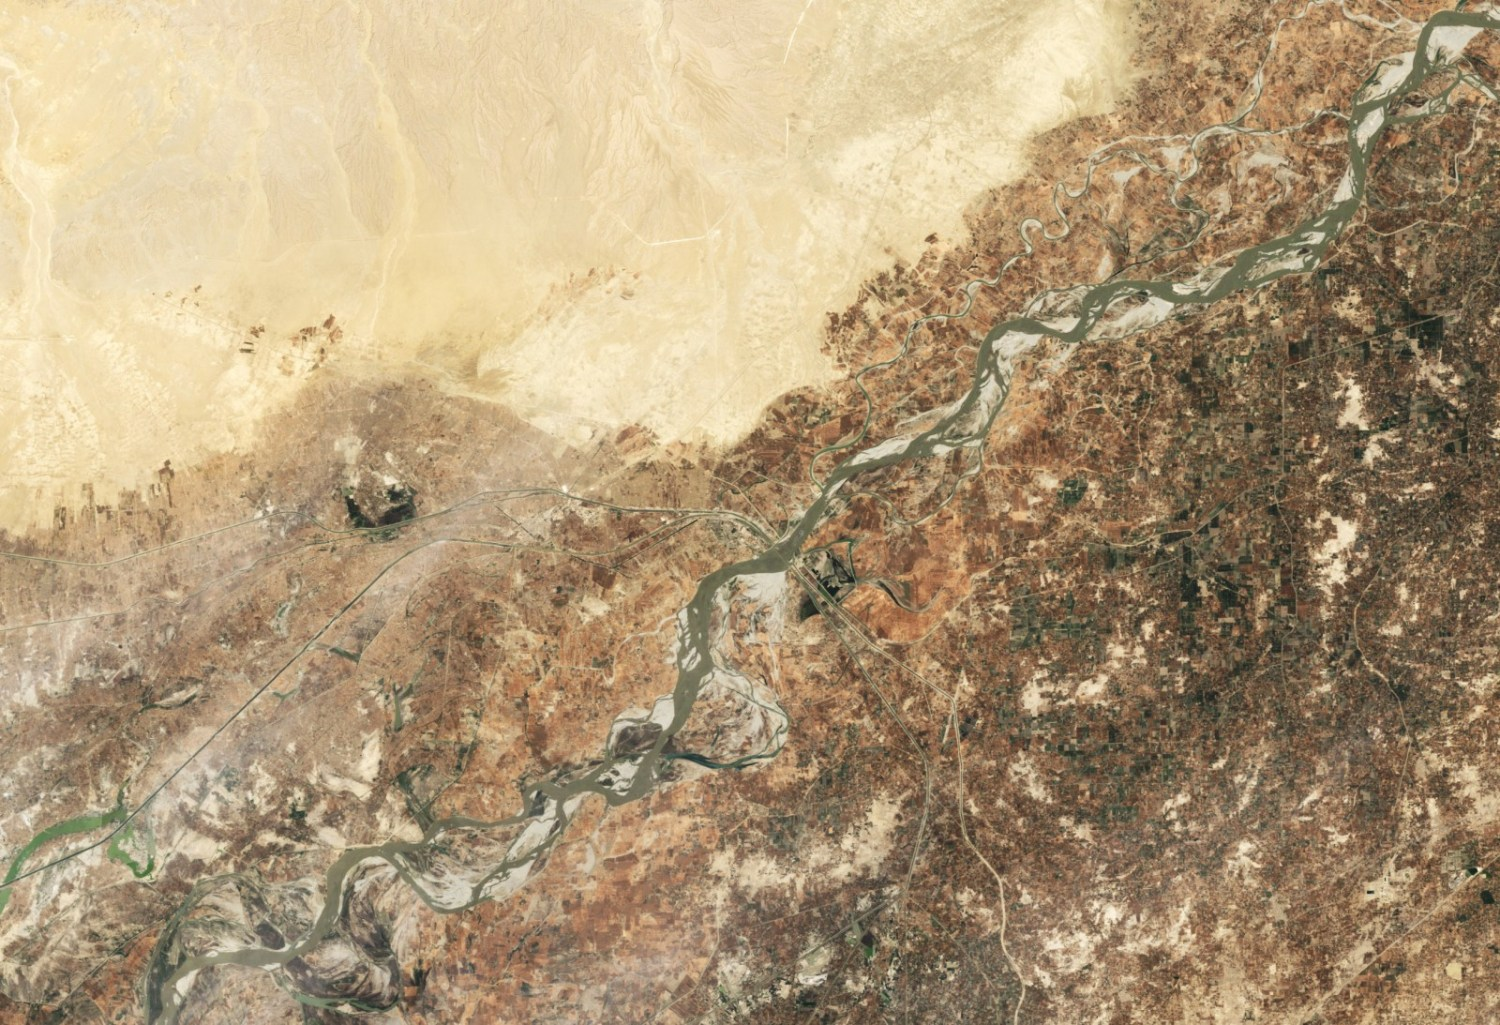 The Indus River is critical for agriculture and energy production in India and Pakistan. The shared river basin is home to at least 300 million people, and its water resources have long been a point of contention between the two countries. This image, captured by the Landsat 5 satellite in June 2009, shows the area around the Guddu Barrage, just south of the border between Punjab and Sindh provinces in Pakistan. Image courtesy NASA